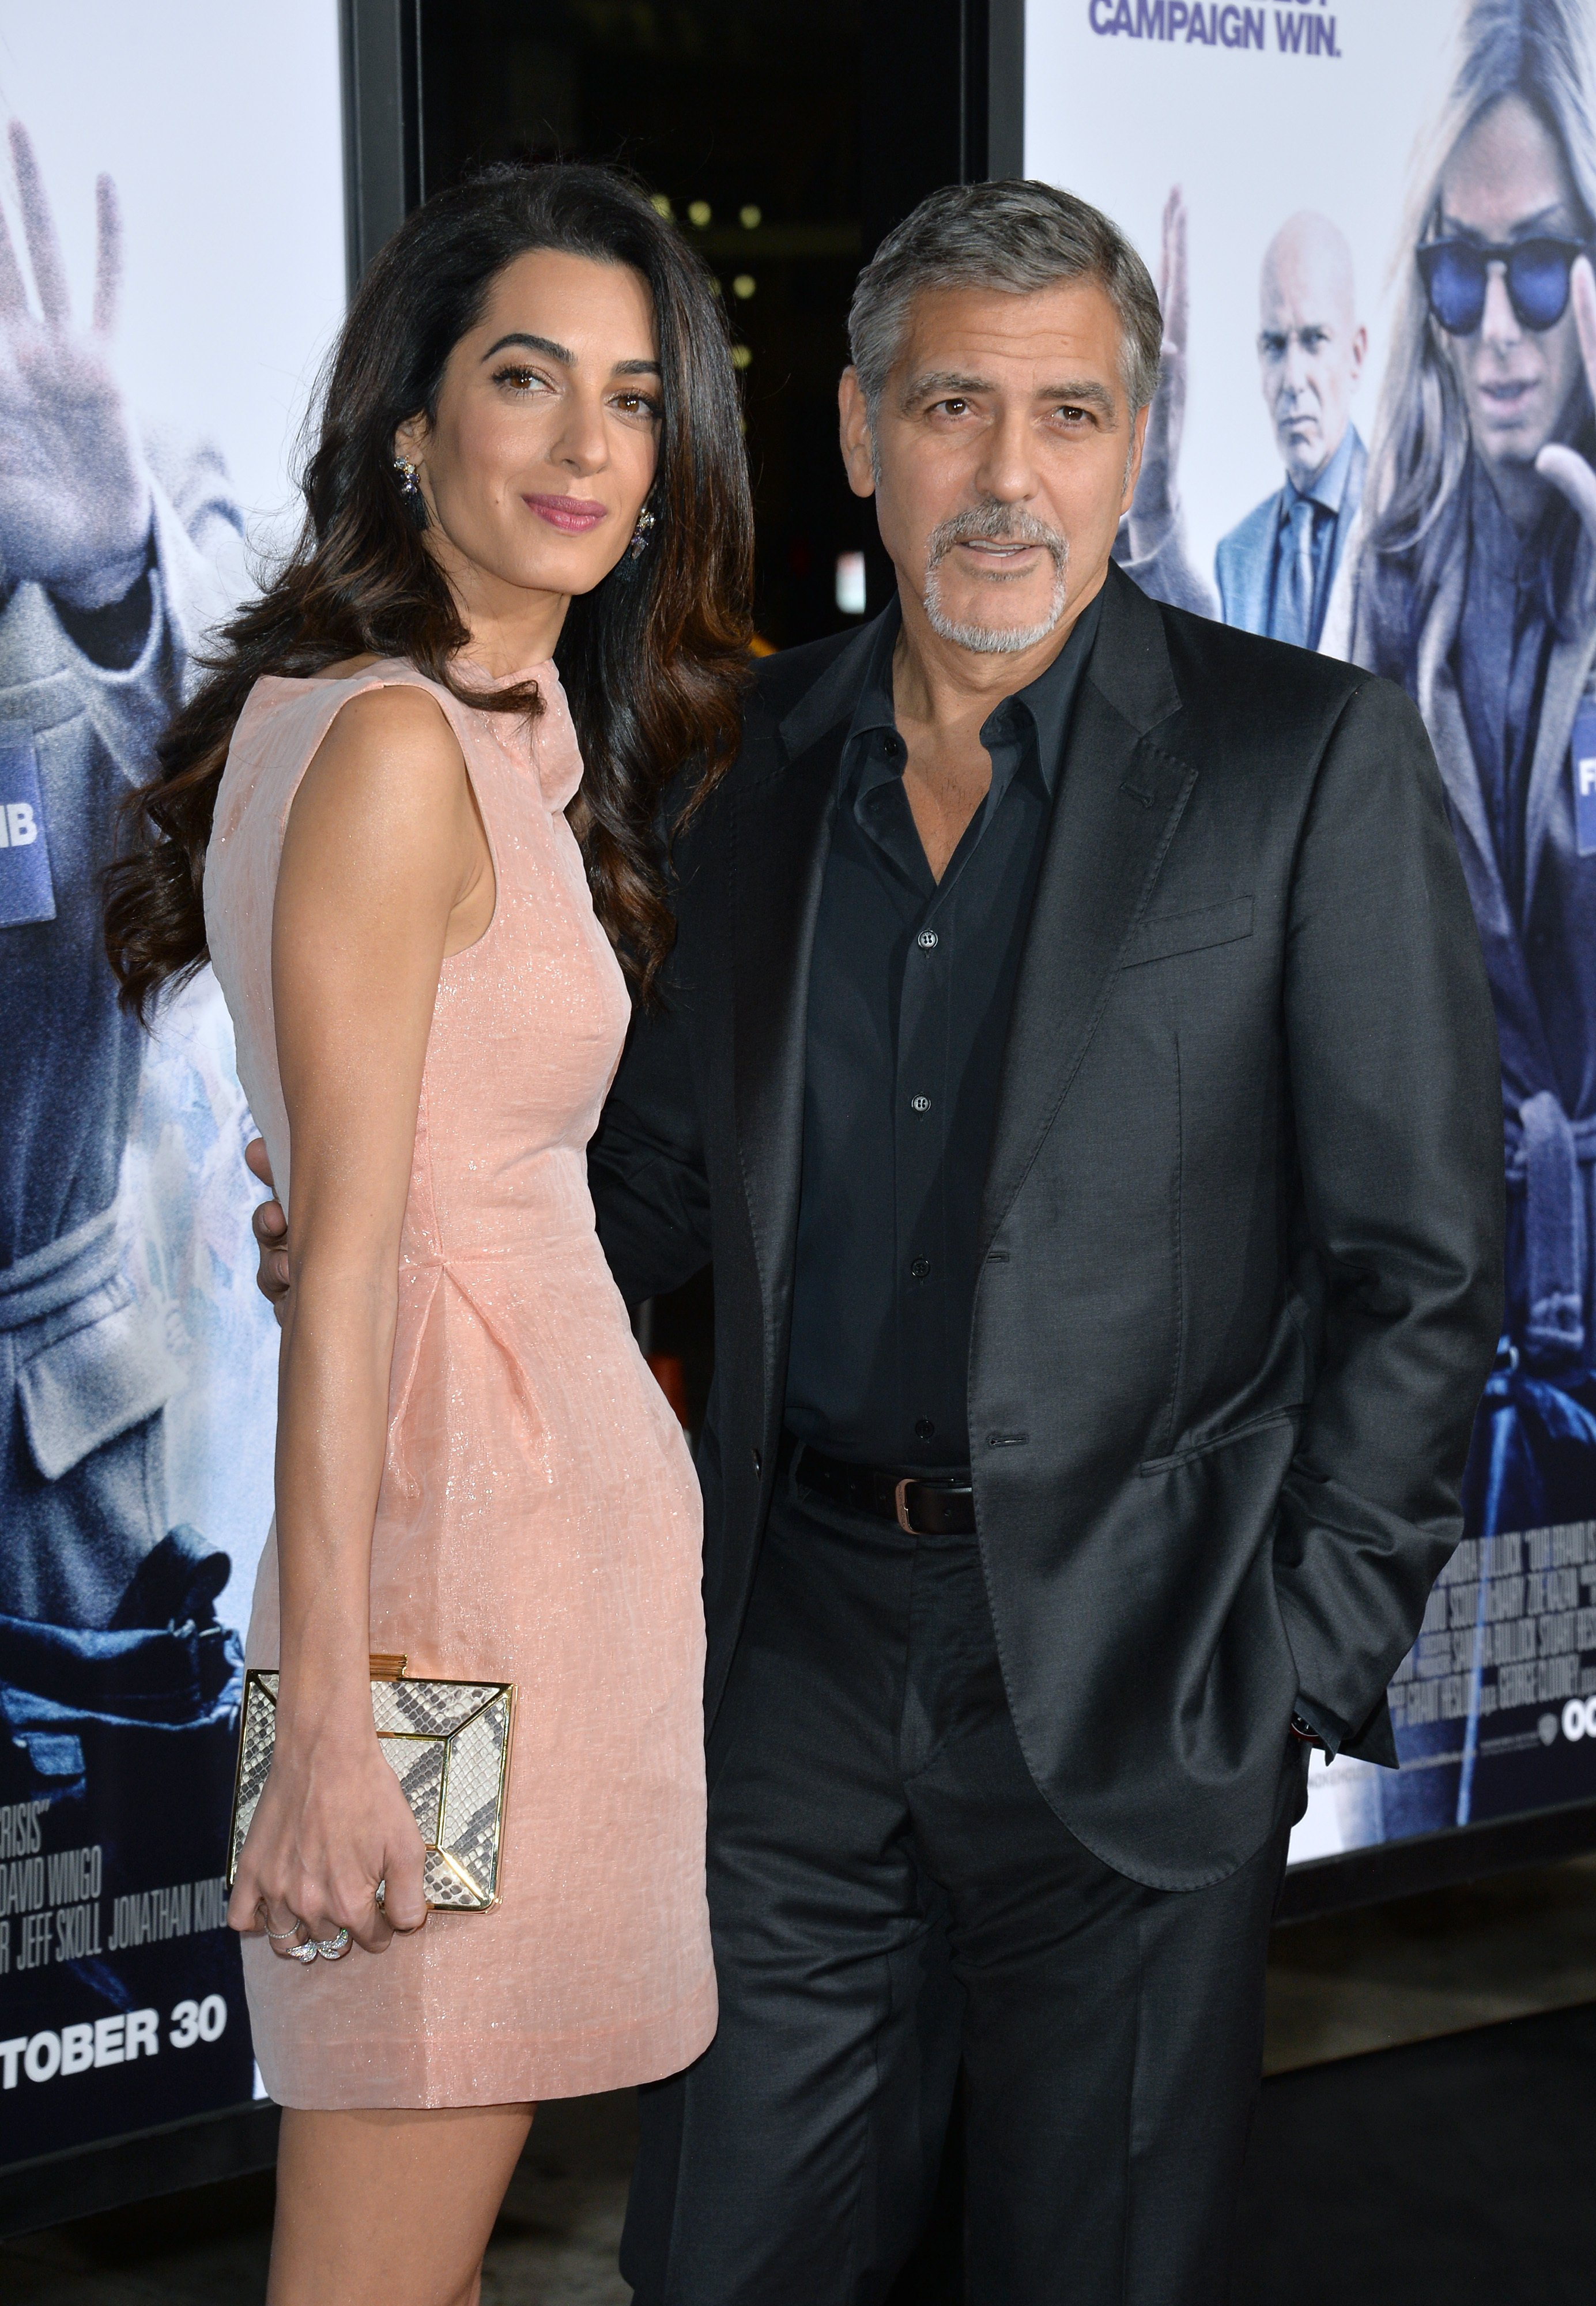 """Producer George Clooney & wife Amal Alamuddin at the premiere of his movie """"Our Brand is Crisis"""" at the TCL Chinese Theatre, Hollywood on October 26, 2015. 